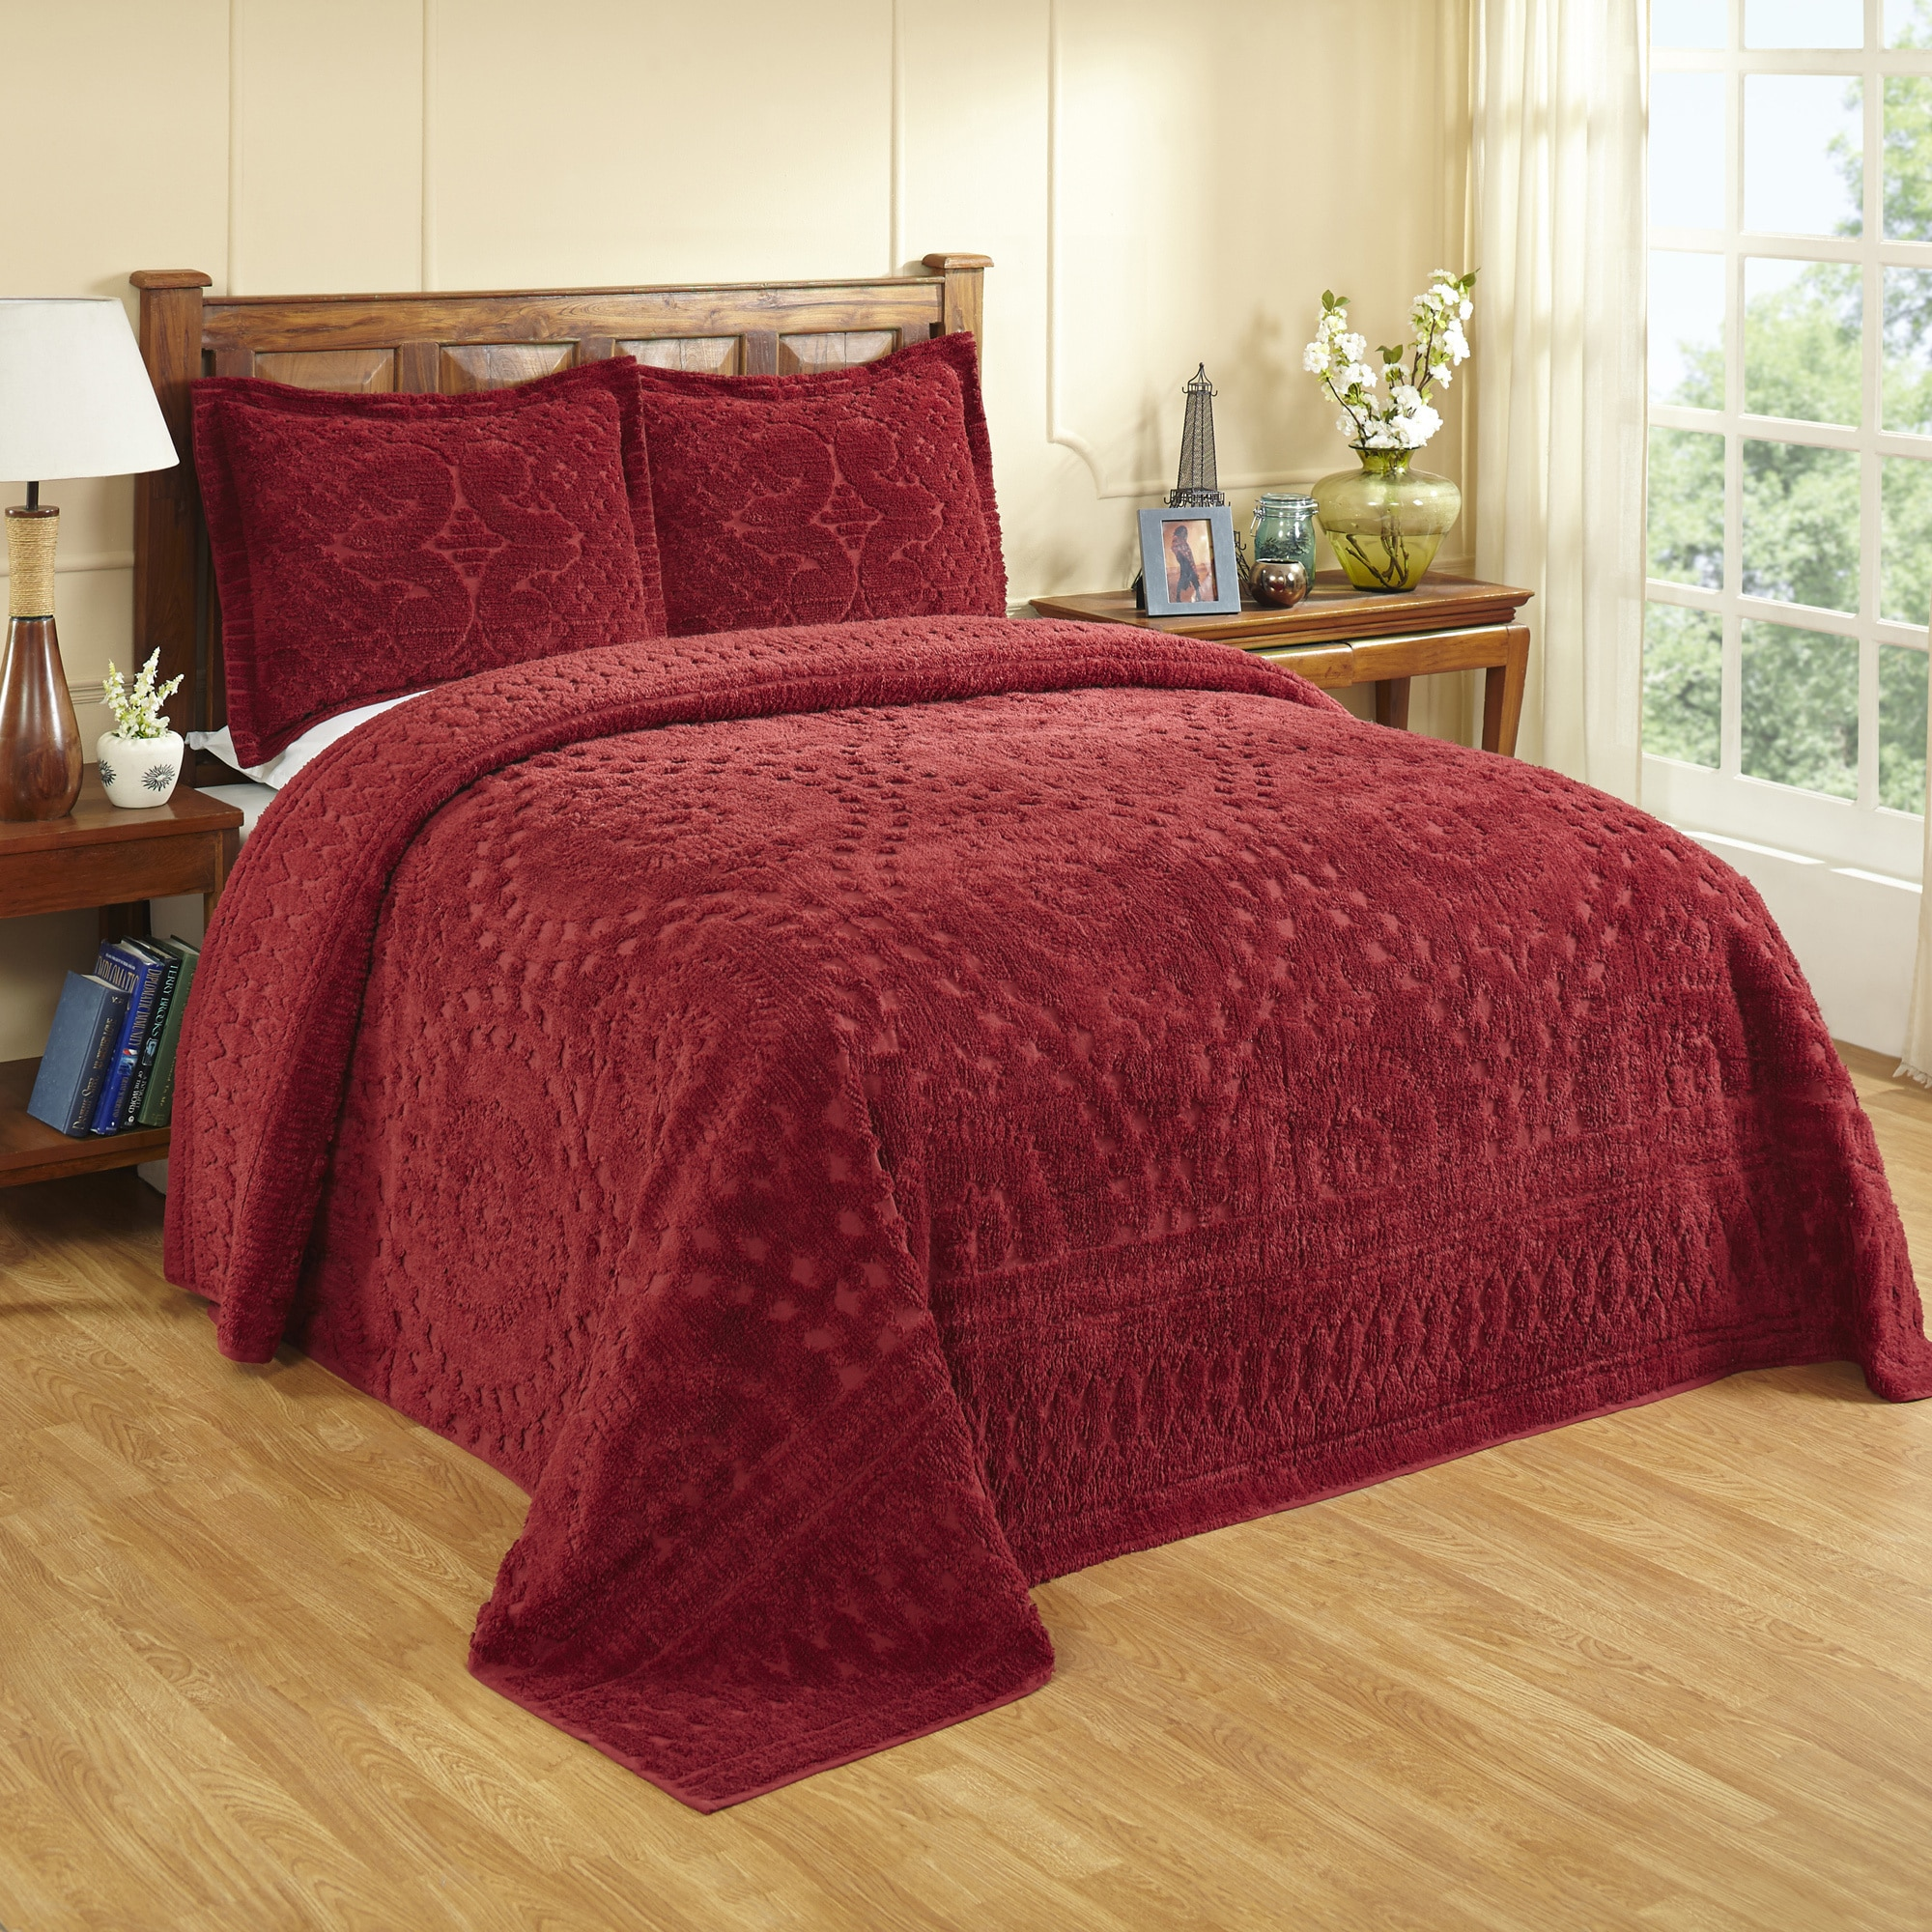 Shop Rio All Cotton Chenille Tufted Bedspread Or Sham